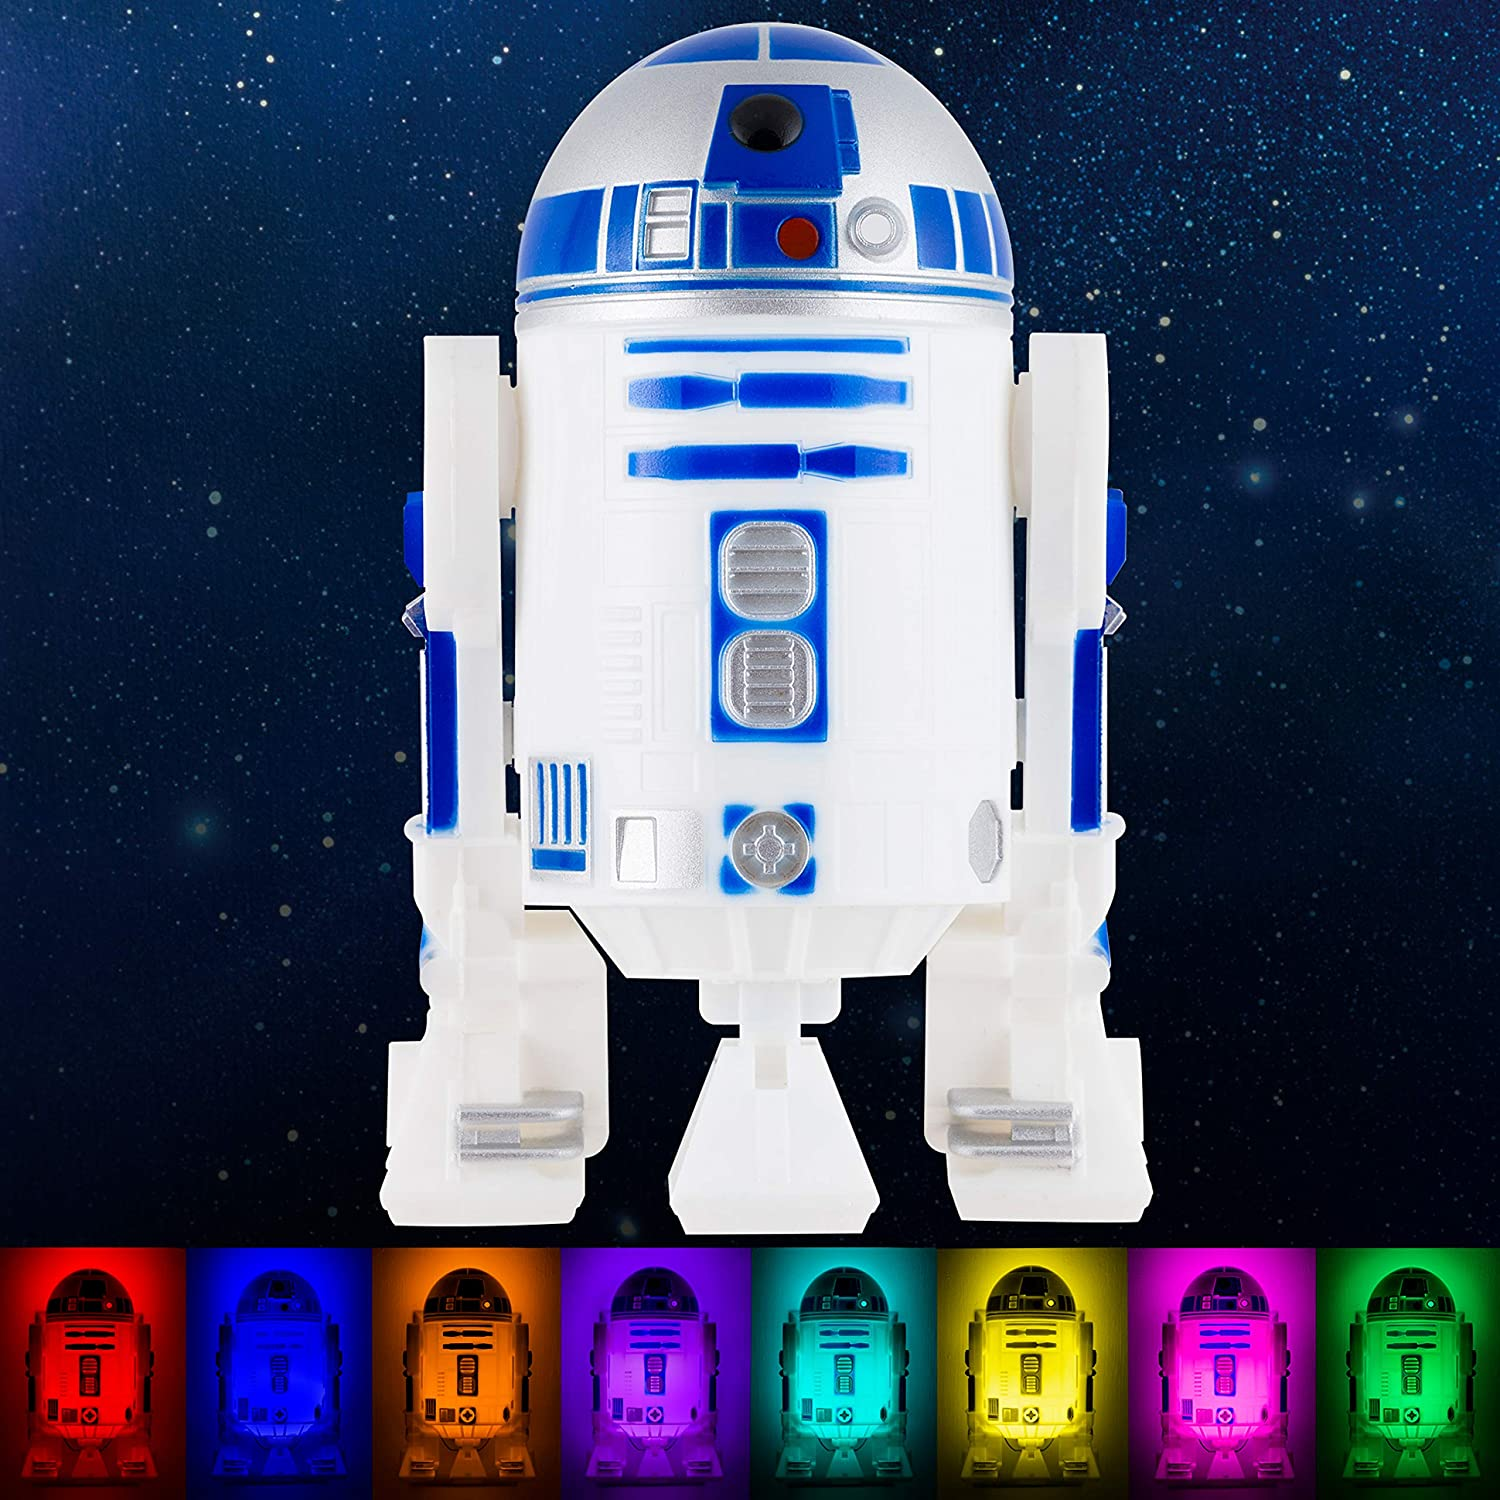 Star Wars R2-D2 LED Night Light, Color Changing, Collector's Edition, Dusk-to-Dawn Sensor, Plug-in, Disney, Galaxy, Ideal for Bedroom, Bathroom, Nursery, Hallway, 43669